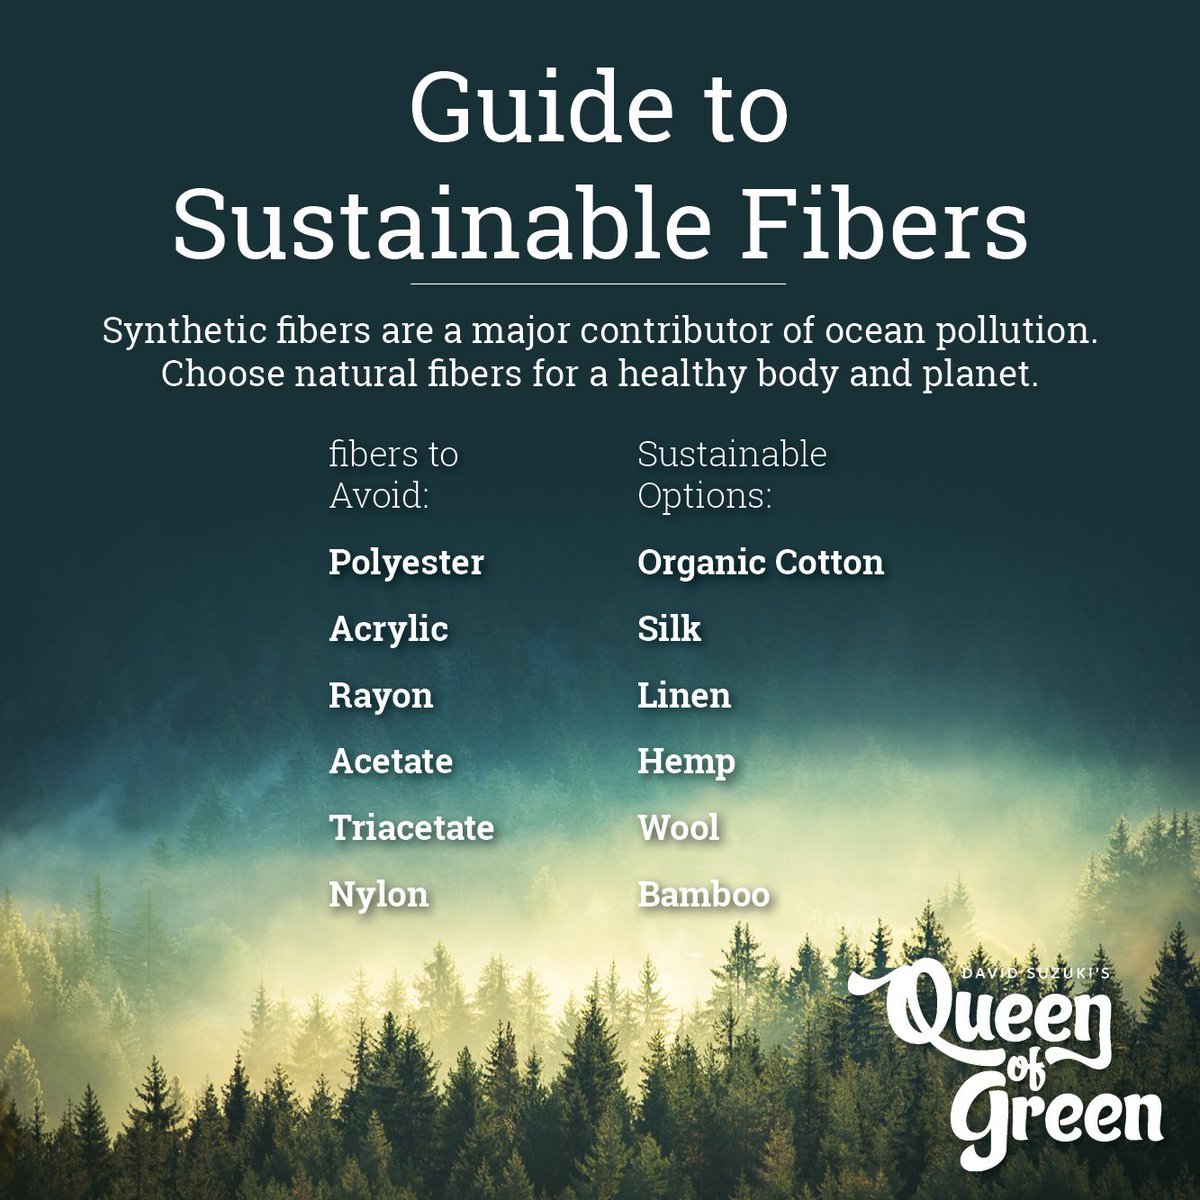 Choose #sustainablefashion and keep microfibers out of the oceans! https://t.co/EcKgXnN6XH